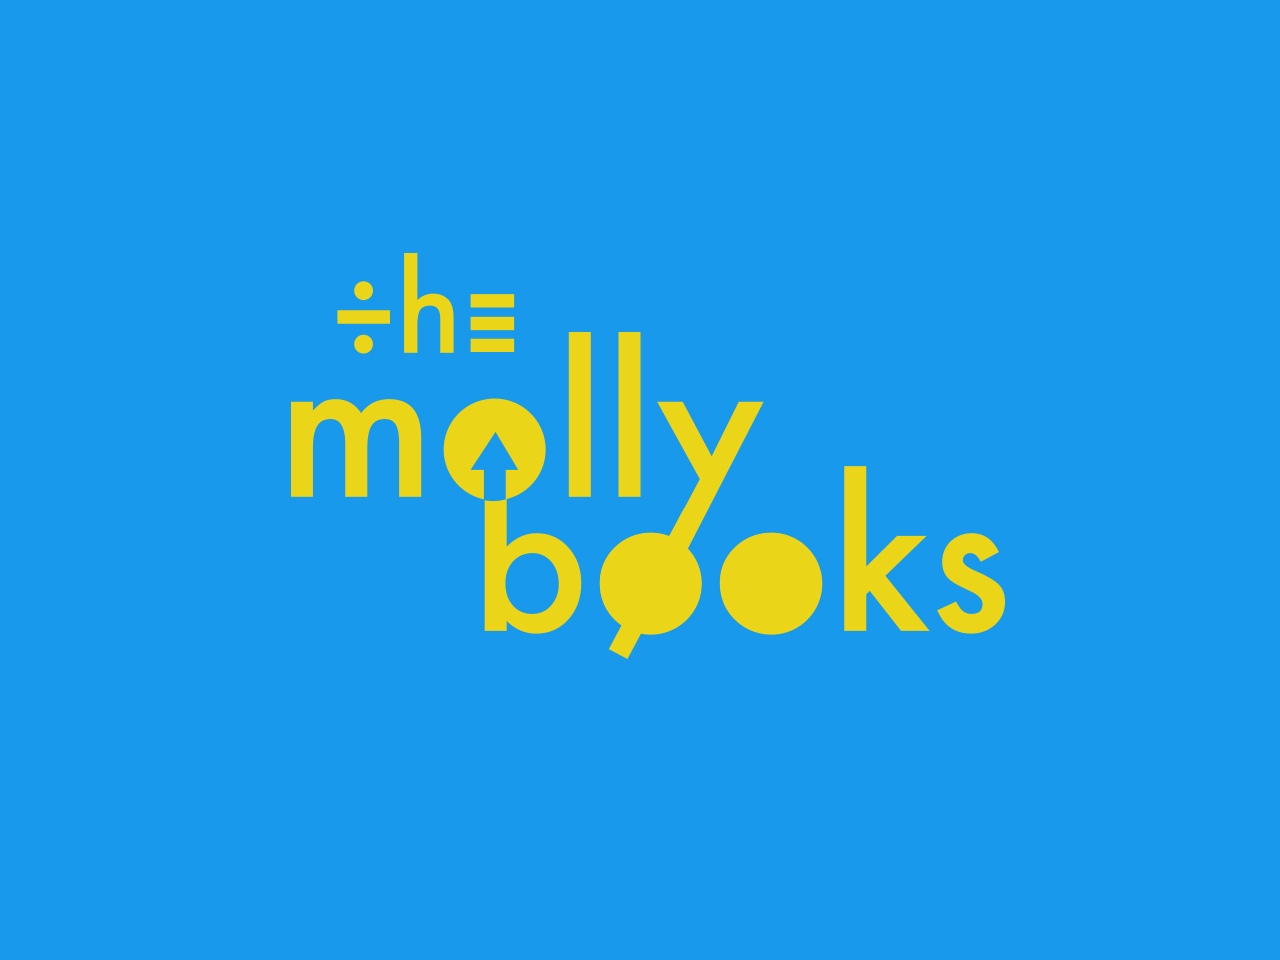 The Molly Books  are a series of children's books by Tom O'Brien teaching logic and analytical skills.